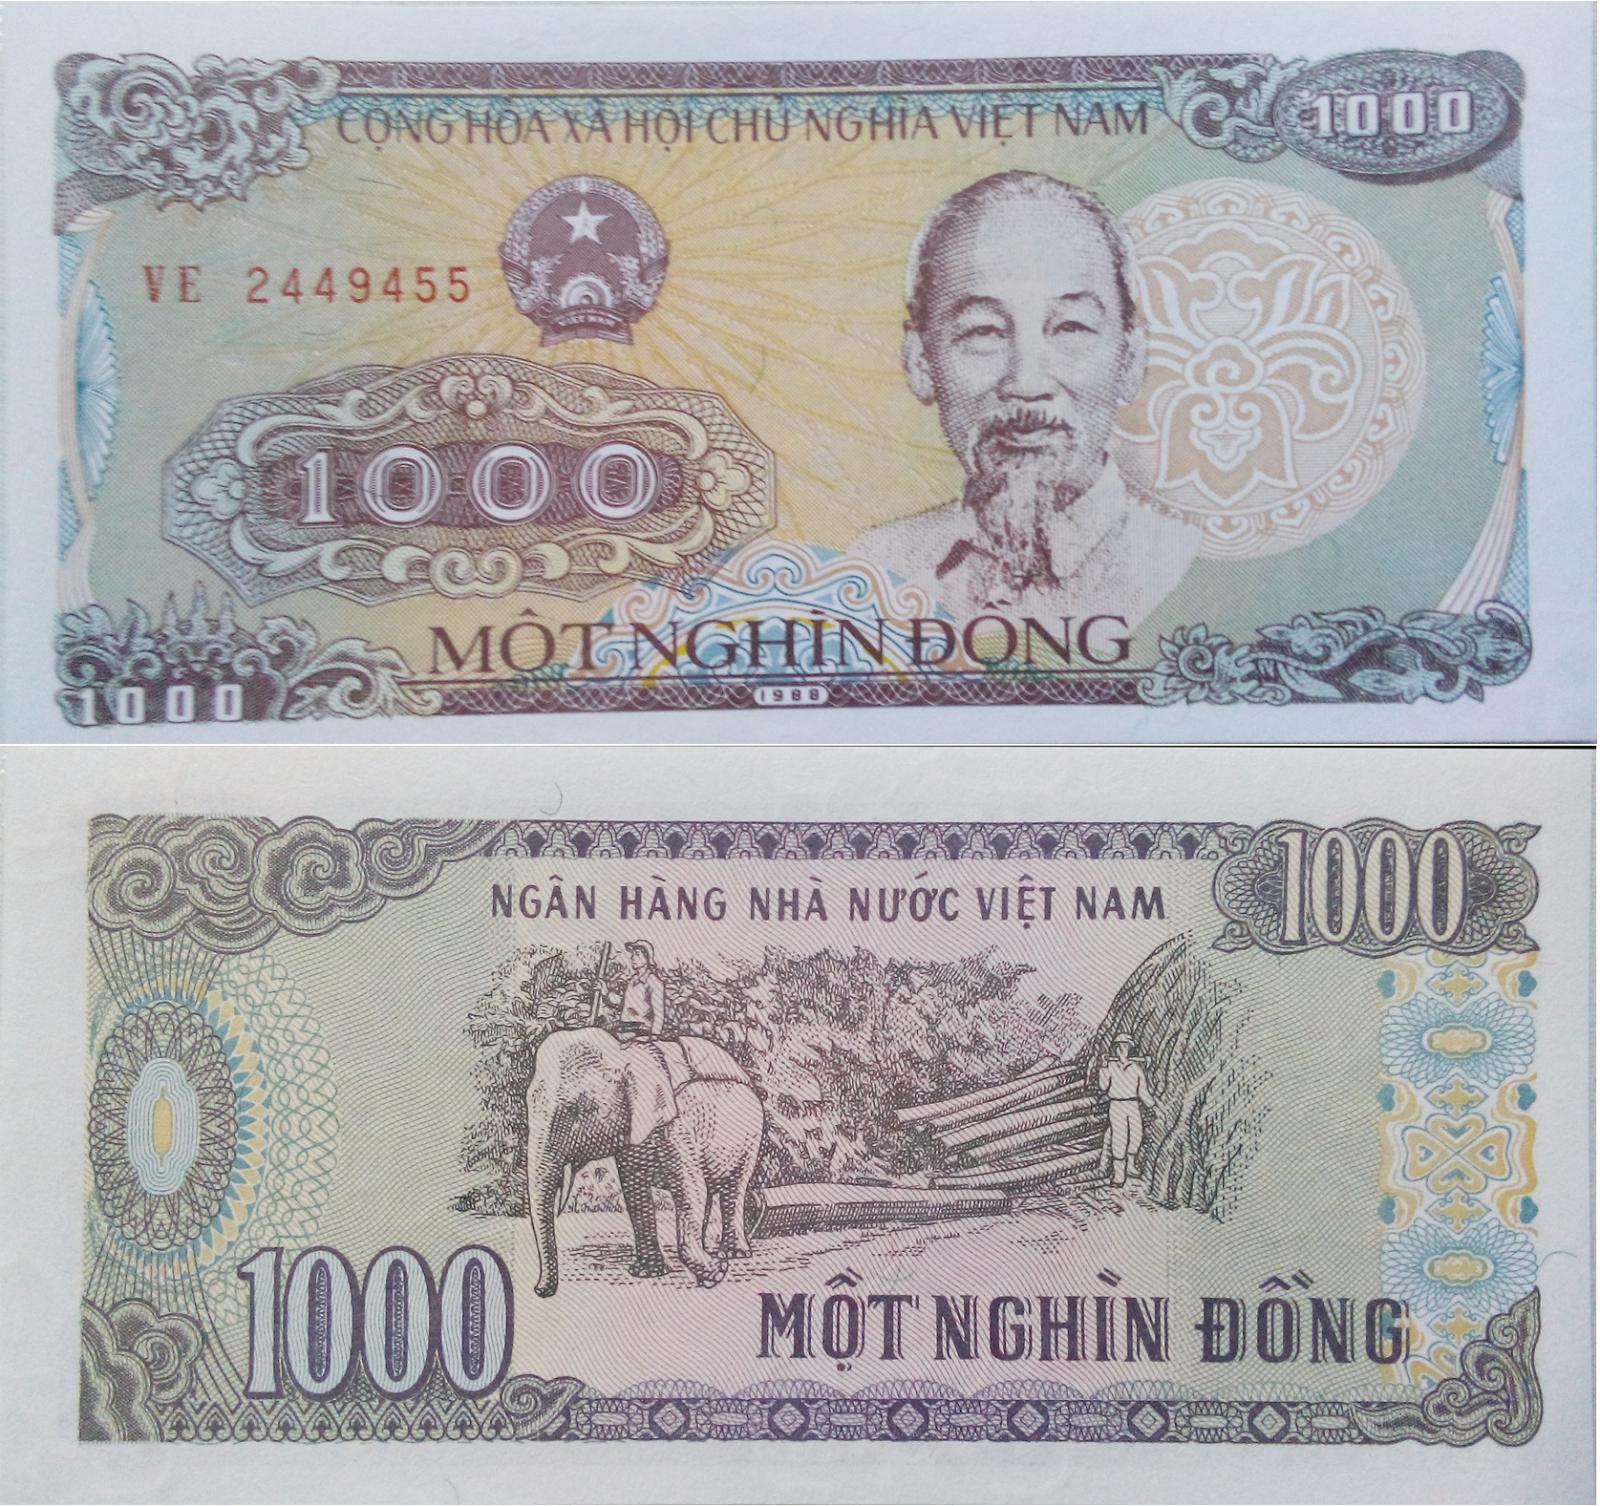 1000 Dong Currency Note Of Vietnam Monnaies Pinterest Banknote